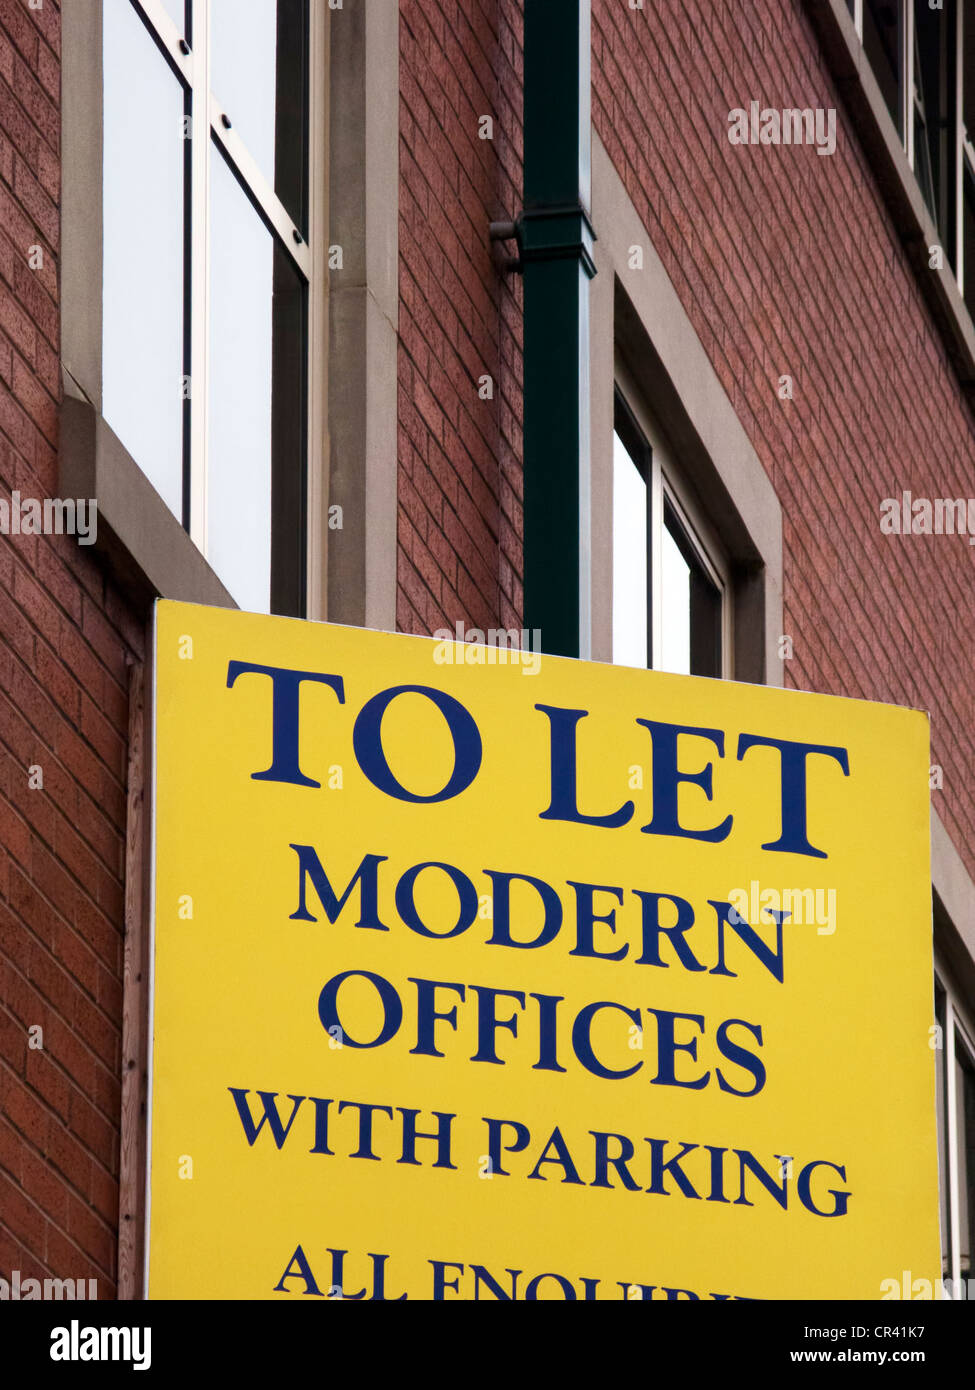 Offices to let sign - Stock Image